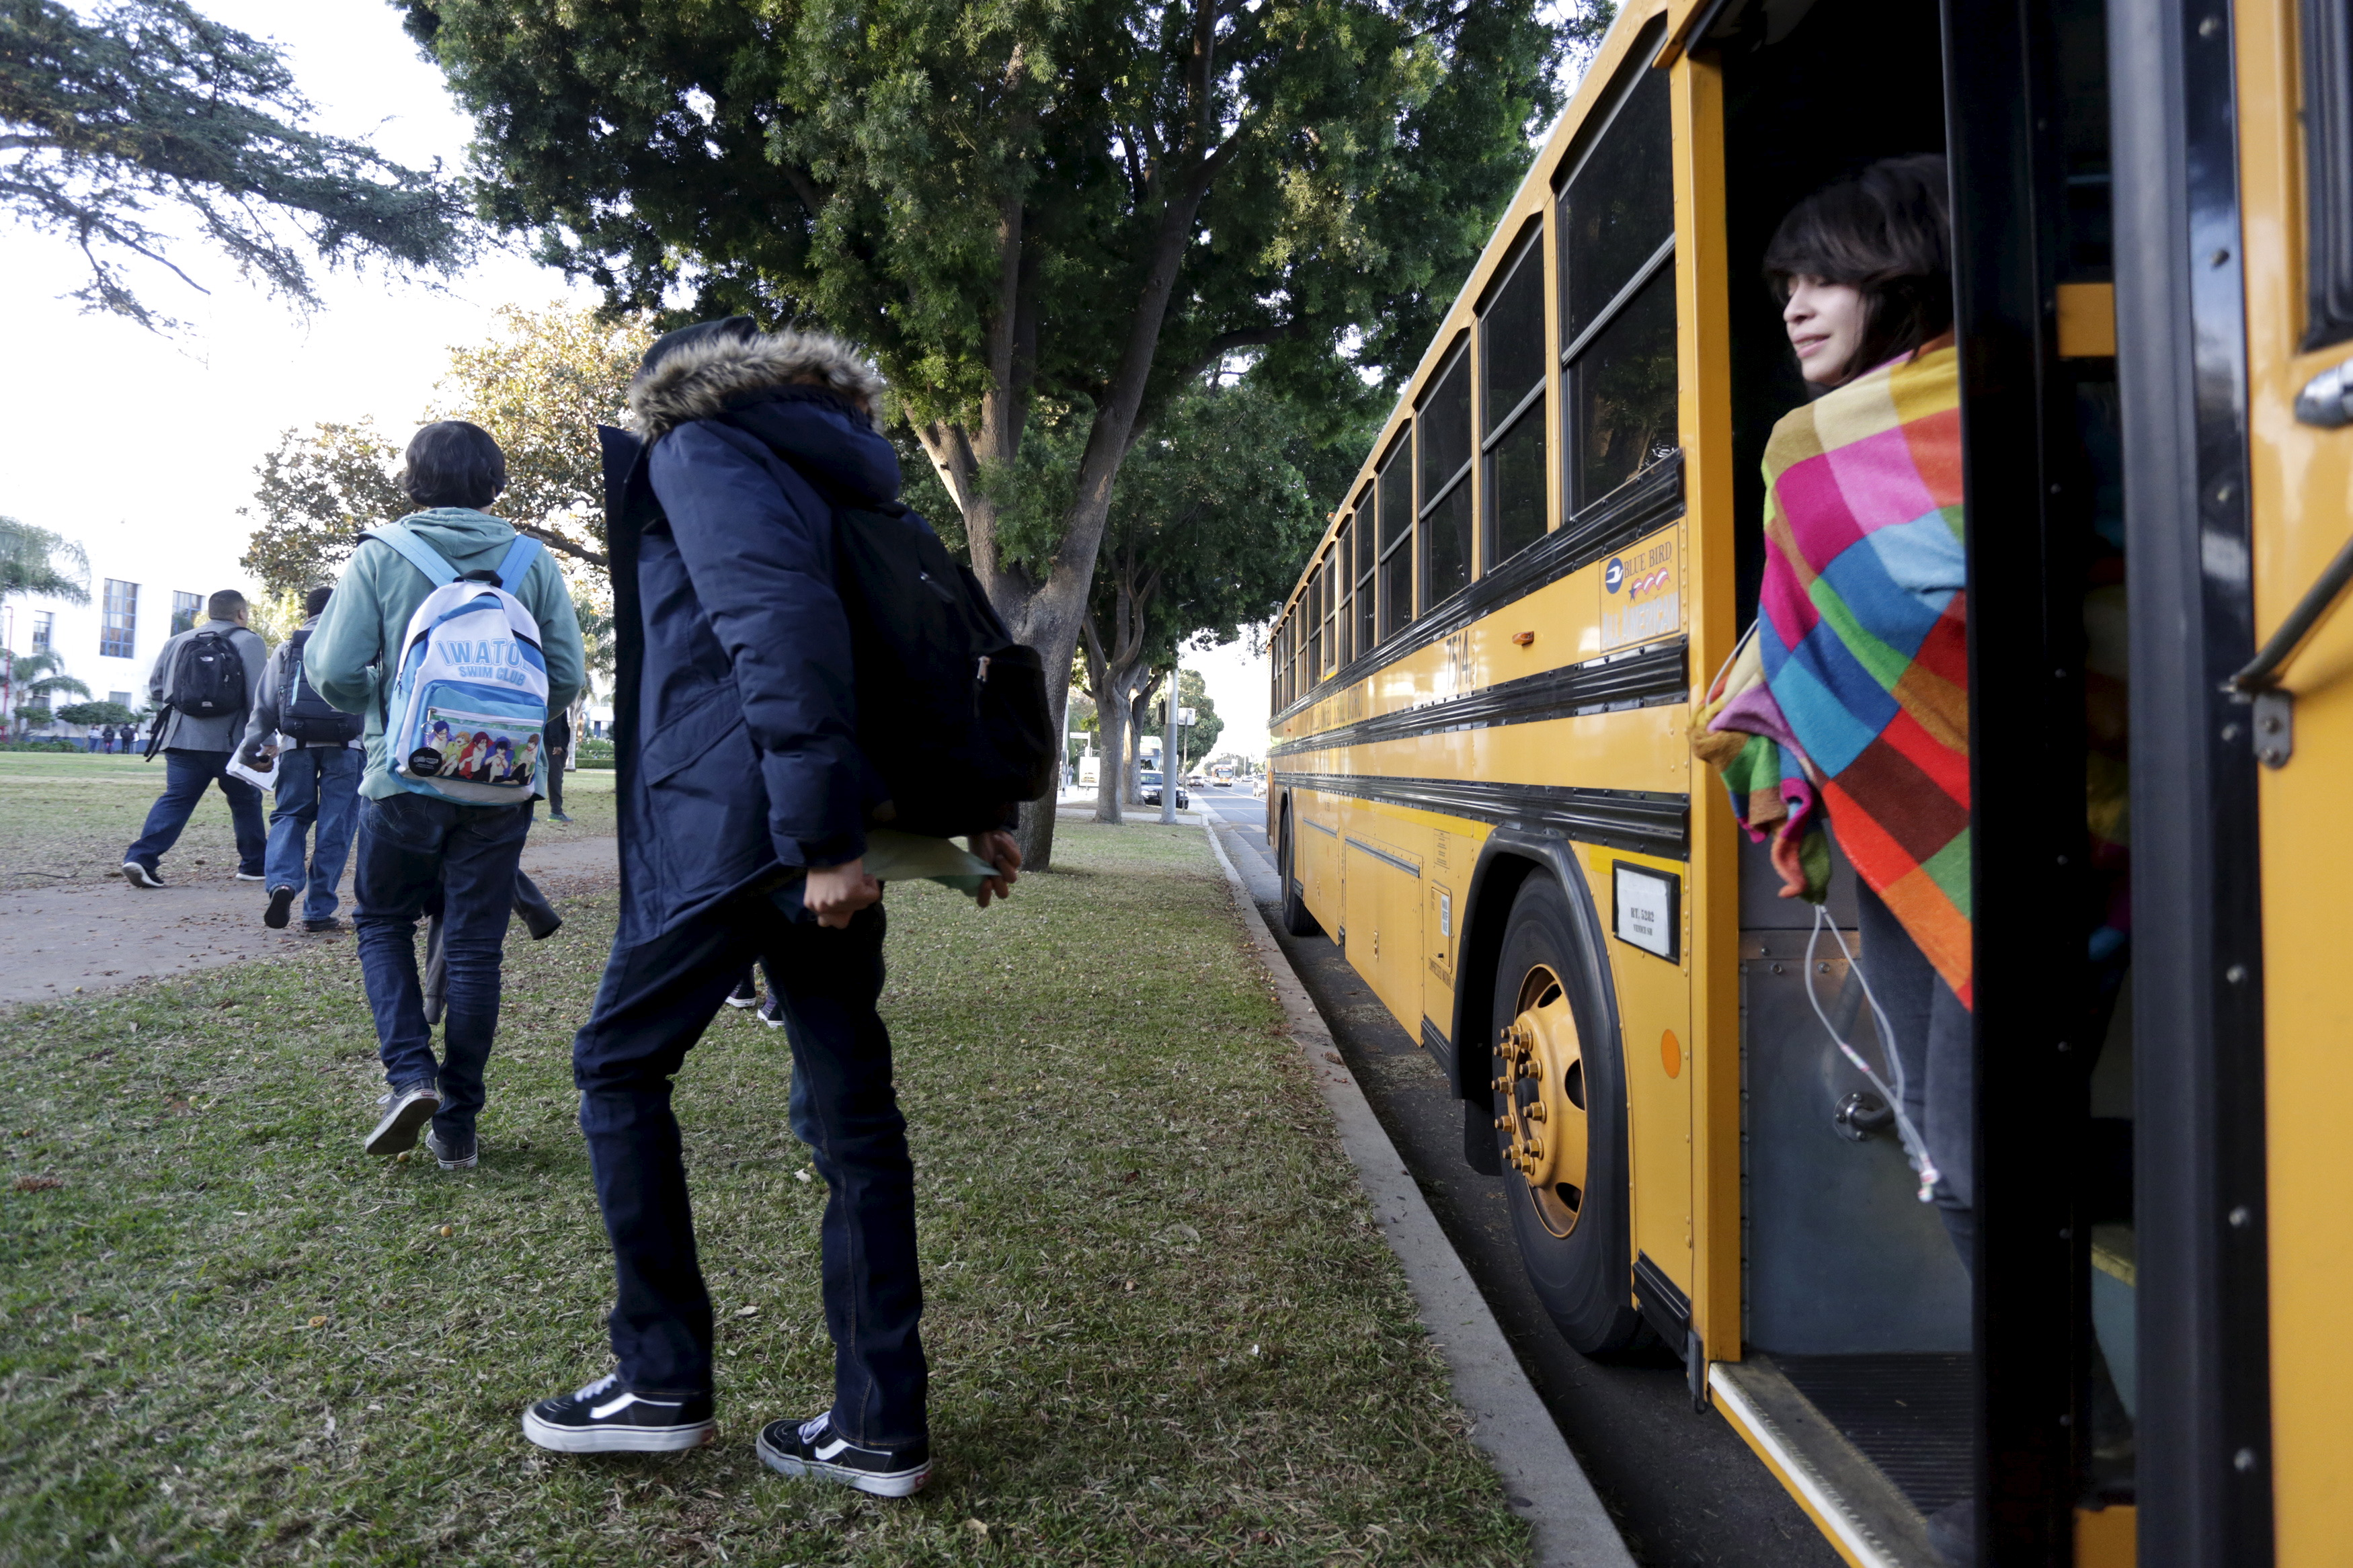 Students exit a bus as they arrive at Venice High School in Los Angeles.